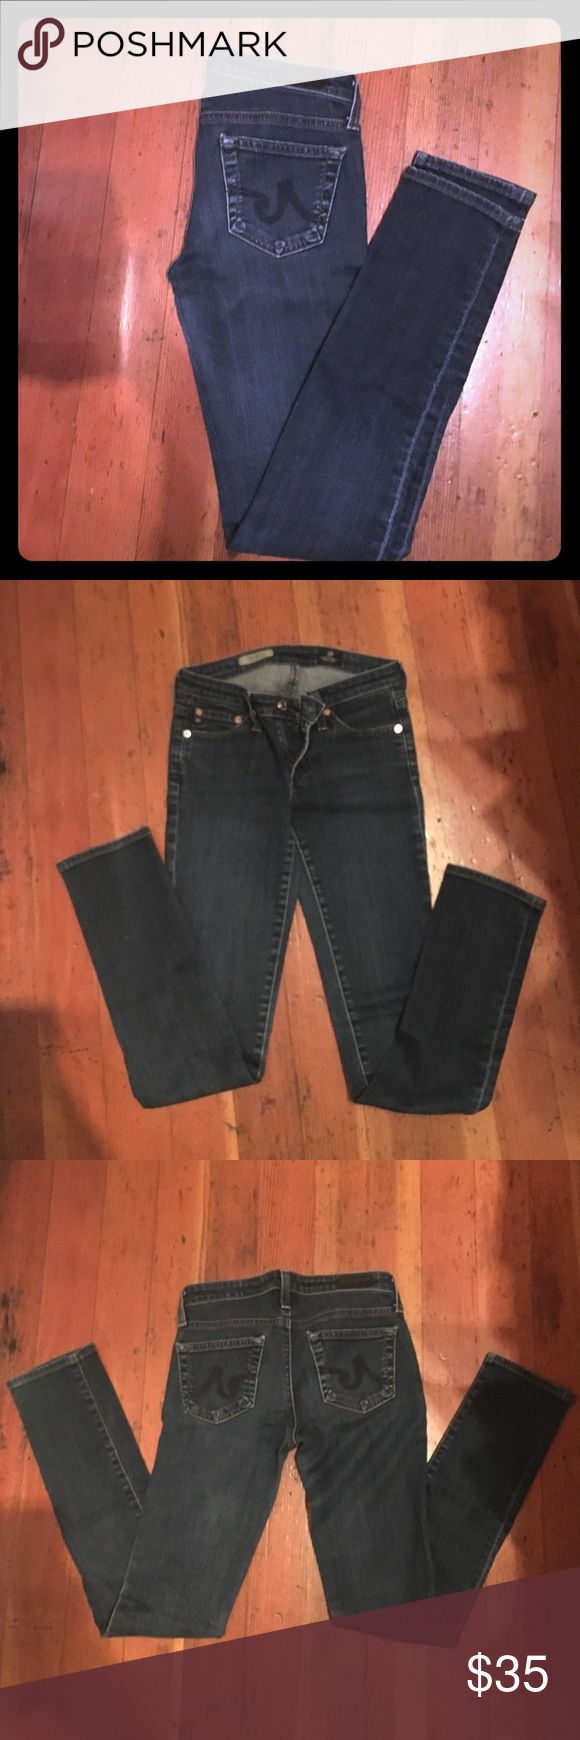 AG The Stilt Cigarette Jean Size 24R Soft and comfortable. These are a small 24. AG Adriano Goldschmied Jeans Skinny